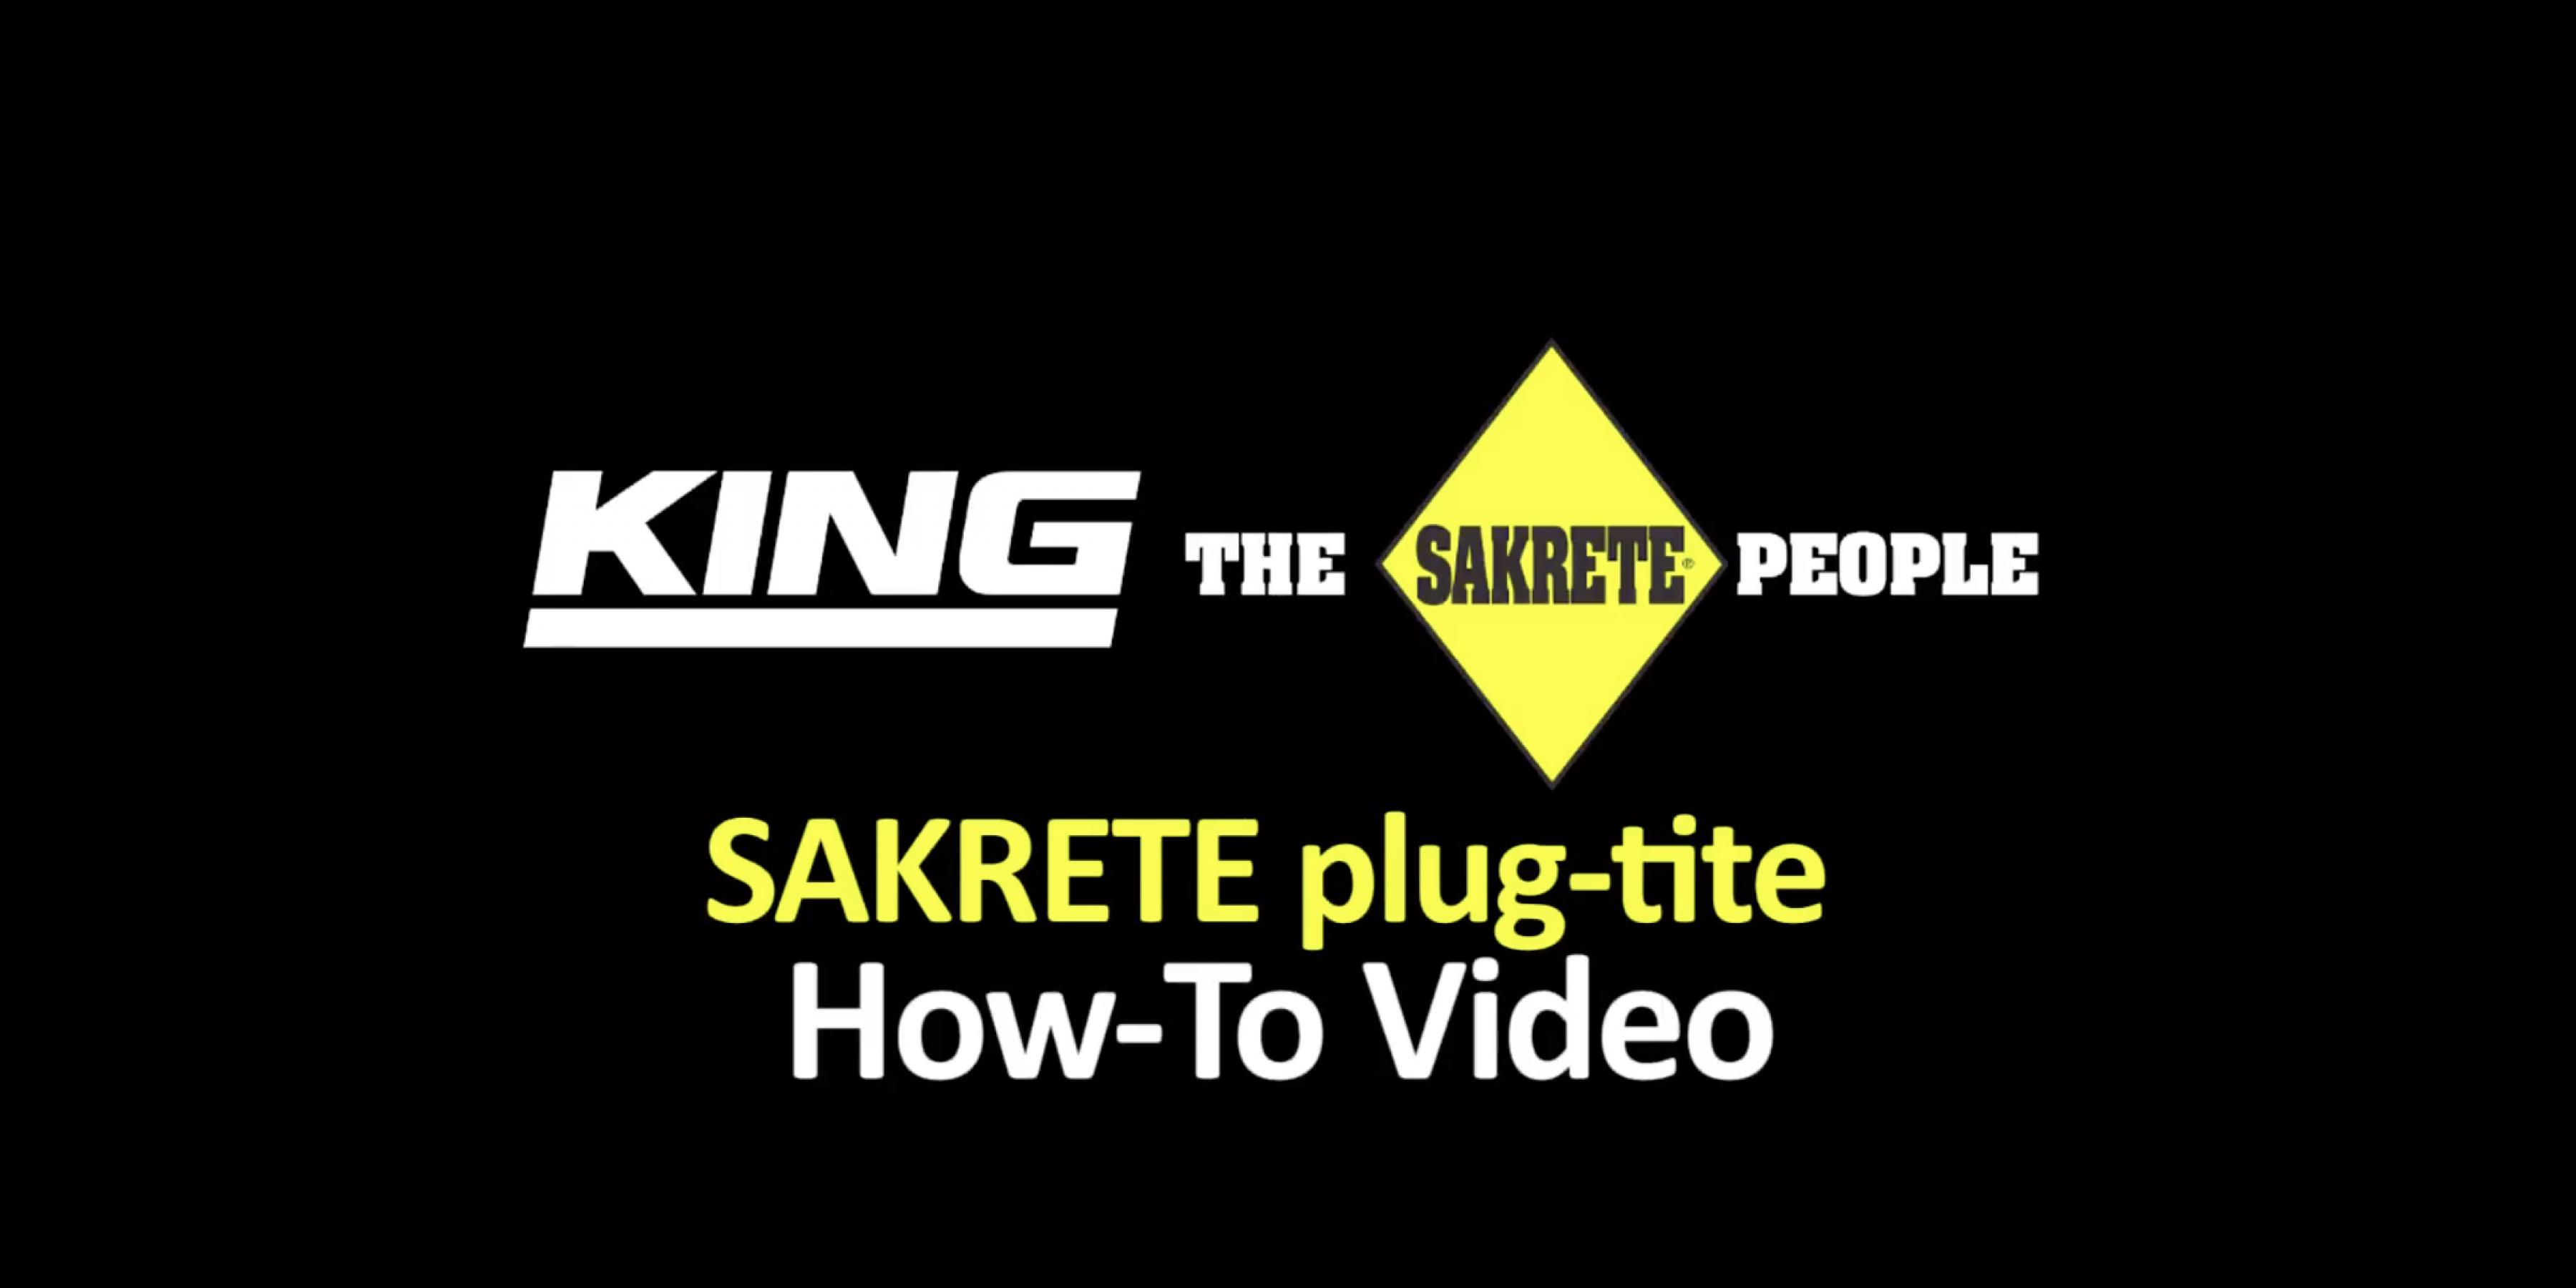 SAKRETE plug-tite How-To Video